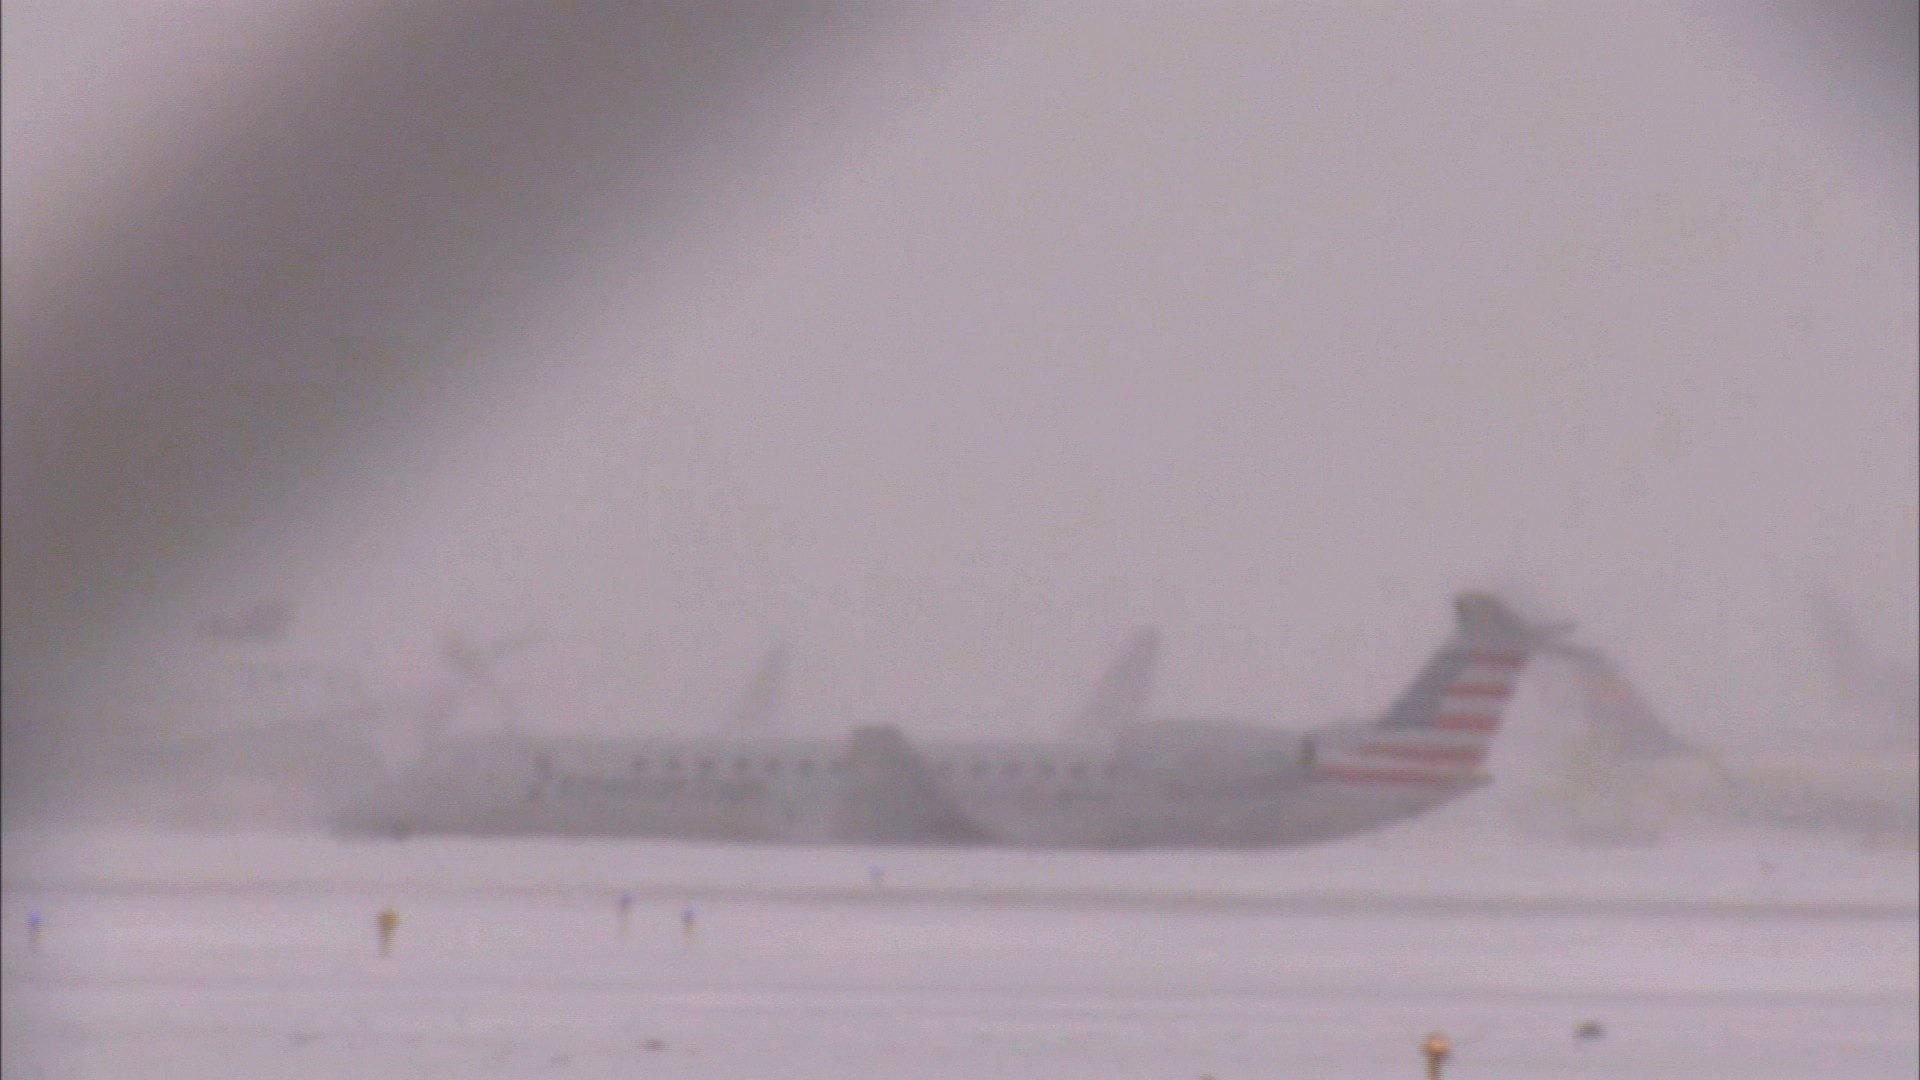 Plane slides off runway at Chicago's O'Hare as snow moves in